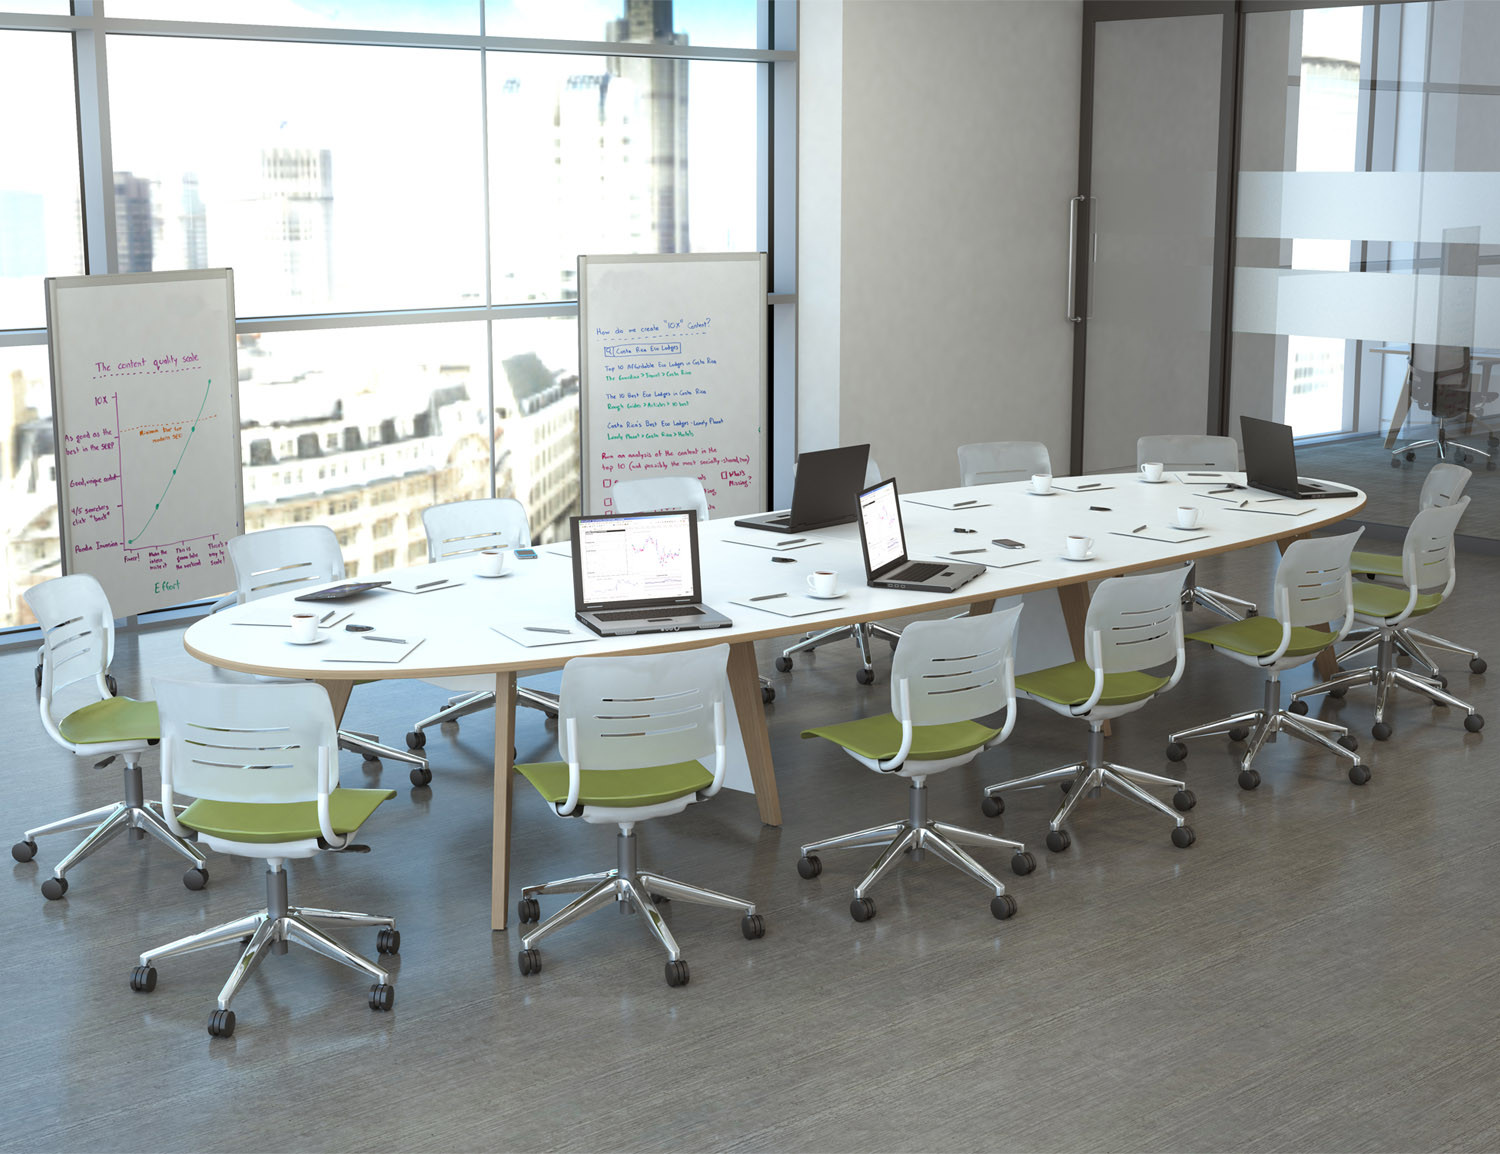 EC4 Boardroom Table from KI Storage